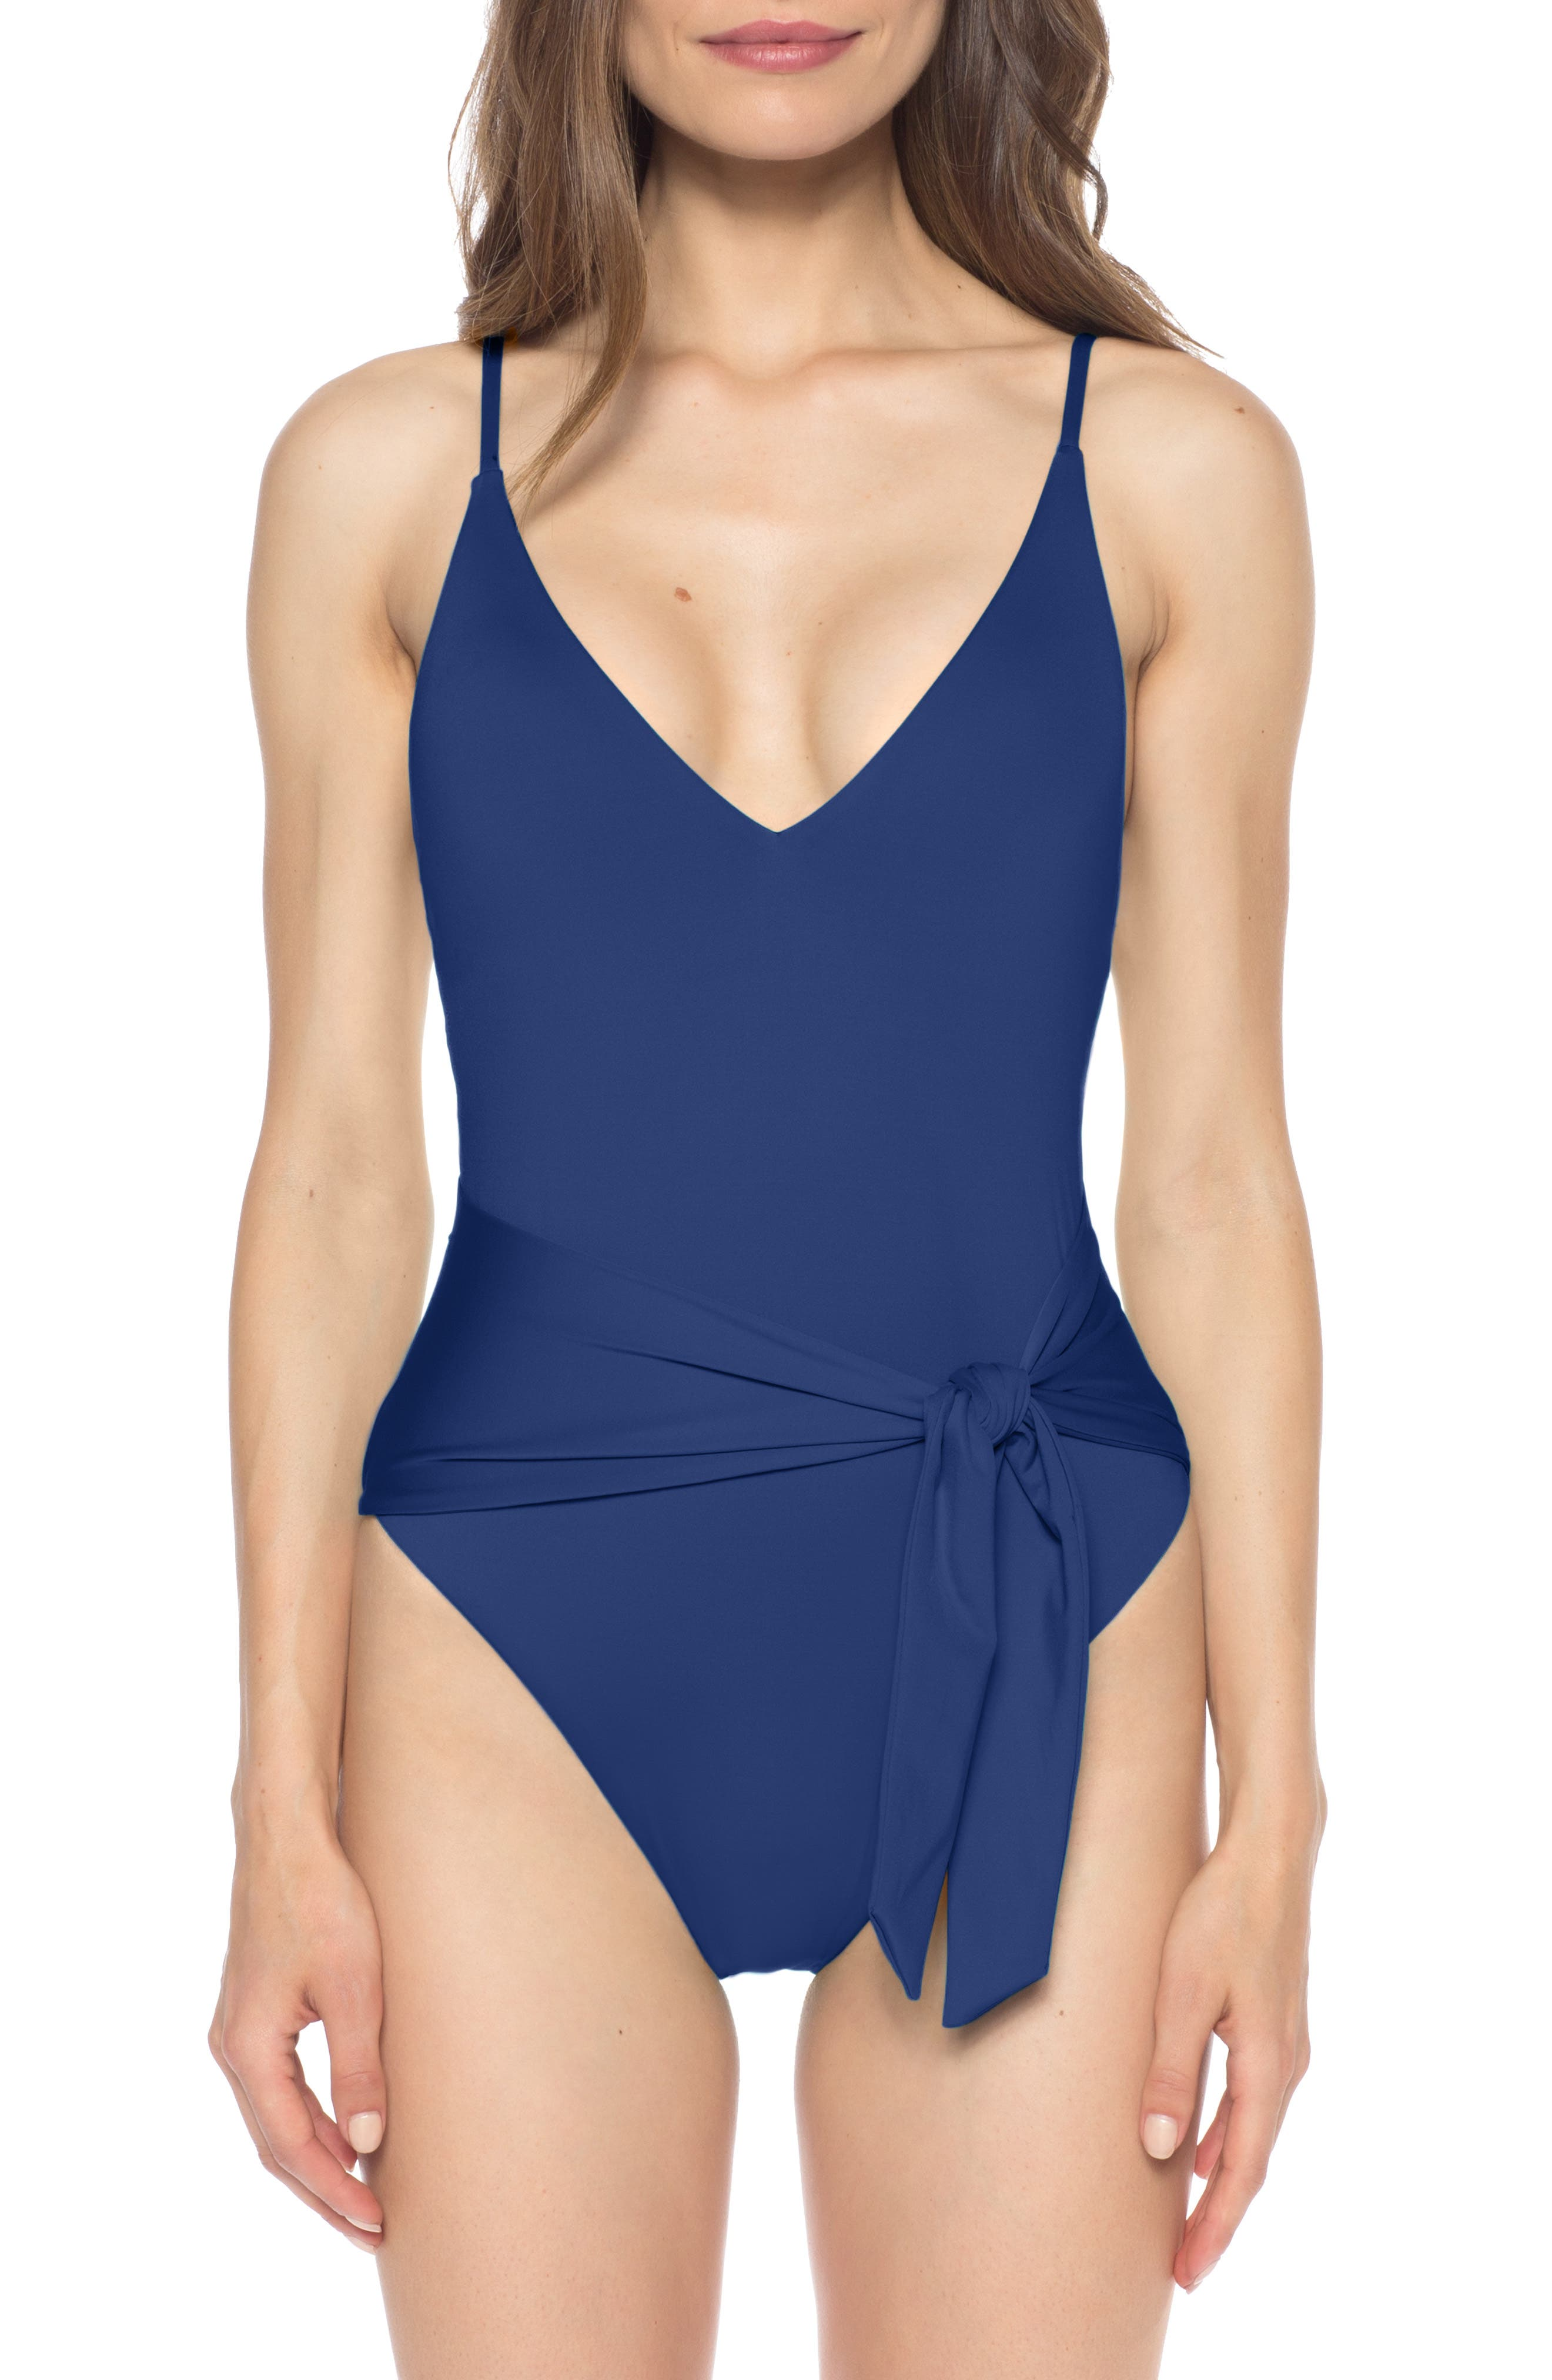 Isabella Rose Double Take One-Piece Swimsuit, Blue